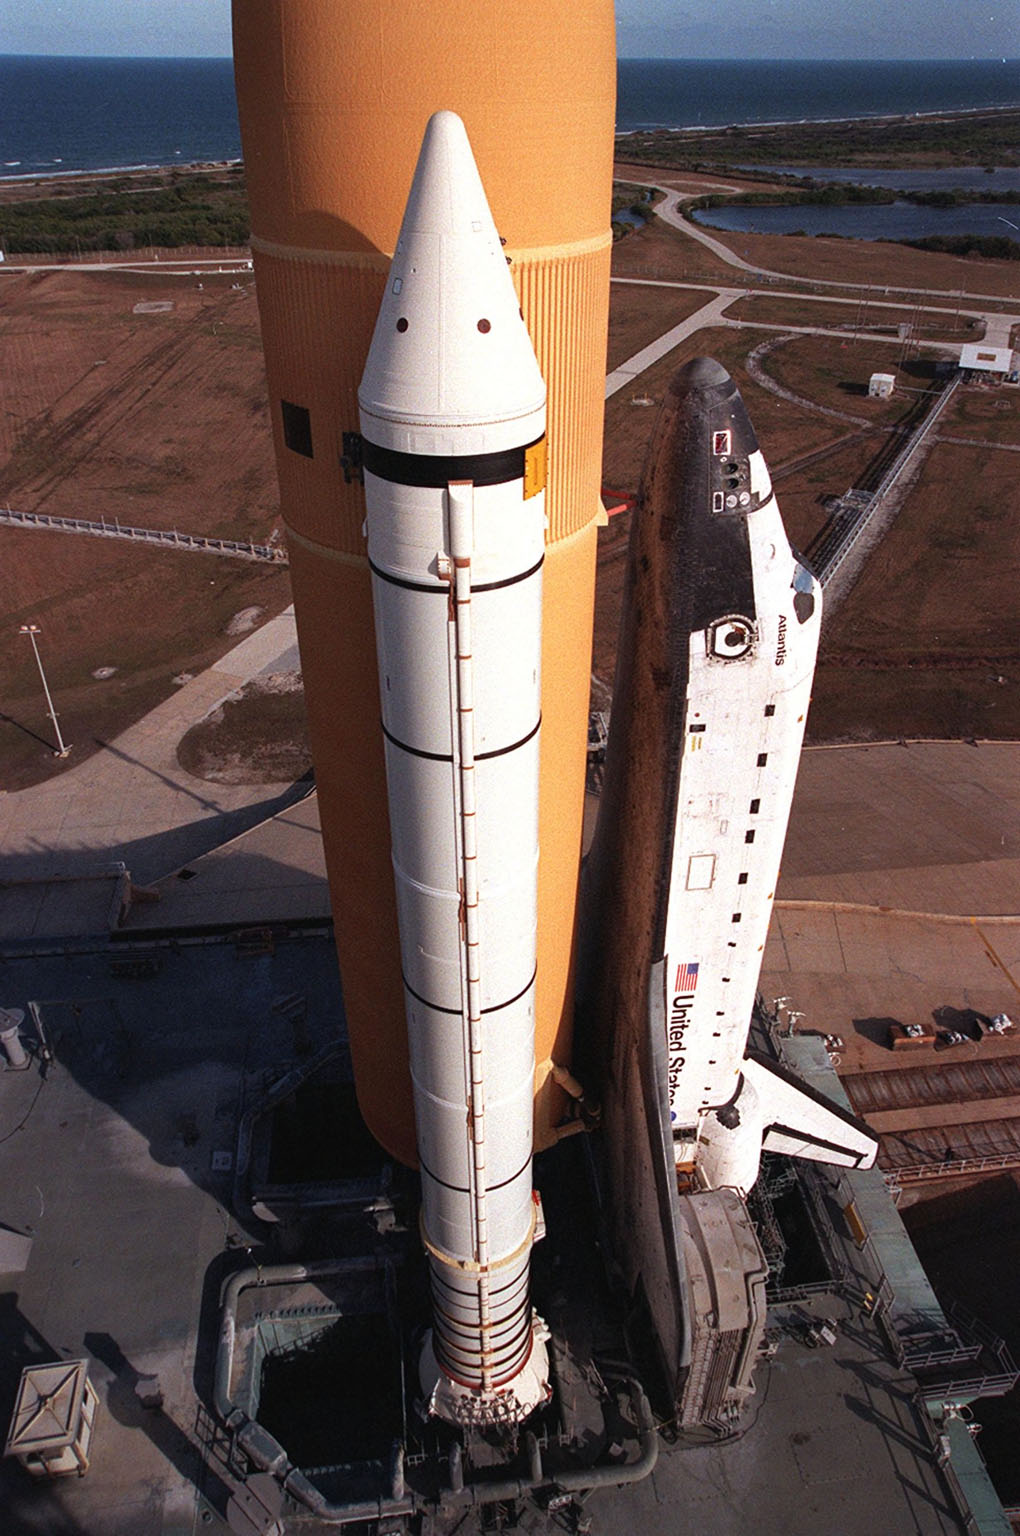 KENNEDY SPACE CENTER, Fla. -- Resting atop the Mobile Launcher Platform, Space Shuttle Atlantis is viewed from a high level on the Fixed Service Structure. Seen is one of its solid rocket boosters and the external tank. Next to the wing of the orbiter is one of two tail service masts, which support the fluid, gas and electrical requirements of the orbiter?s liquid oxygen and liquid hydrogen aft T-0 umbilicals. On the horizon is the Atlantic Ocean. Atlantis will fly on mission STS-98, the seventh construction flight to the International Space Station, carrying the U.S. Laboratory, named Destiny. The lab has five system racks already installed inside the module. After delivery of electronics in the lab, electrically powered attitude control for Control Moment Gyroscopes will be activated. Atlantis is scheduled for launch no earlier than Jan. 19, 2001, with a crew of five